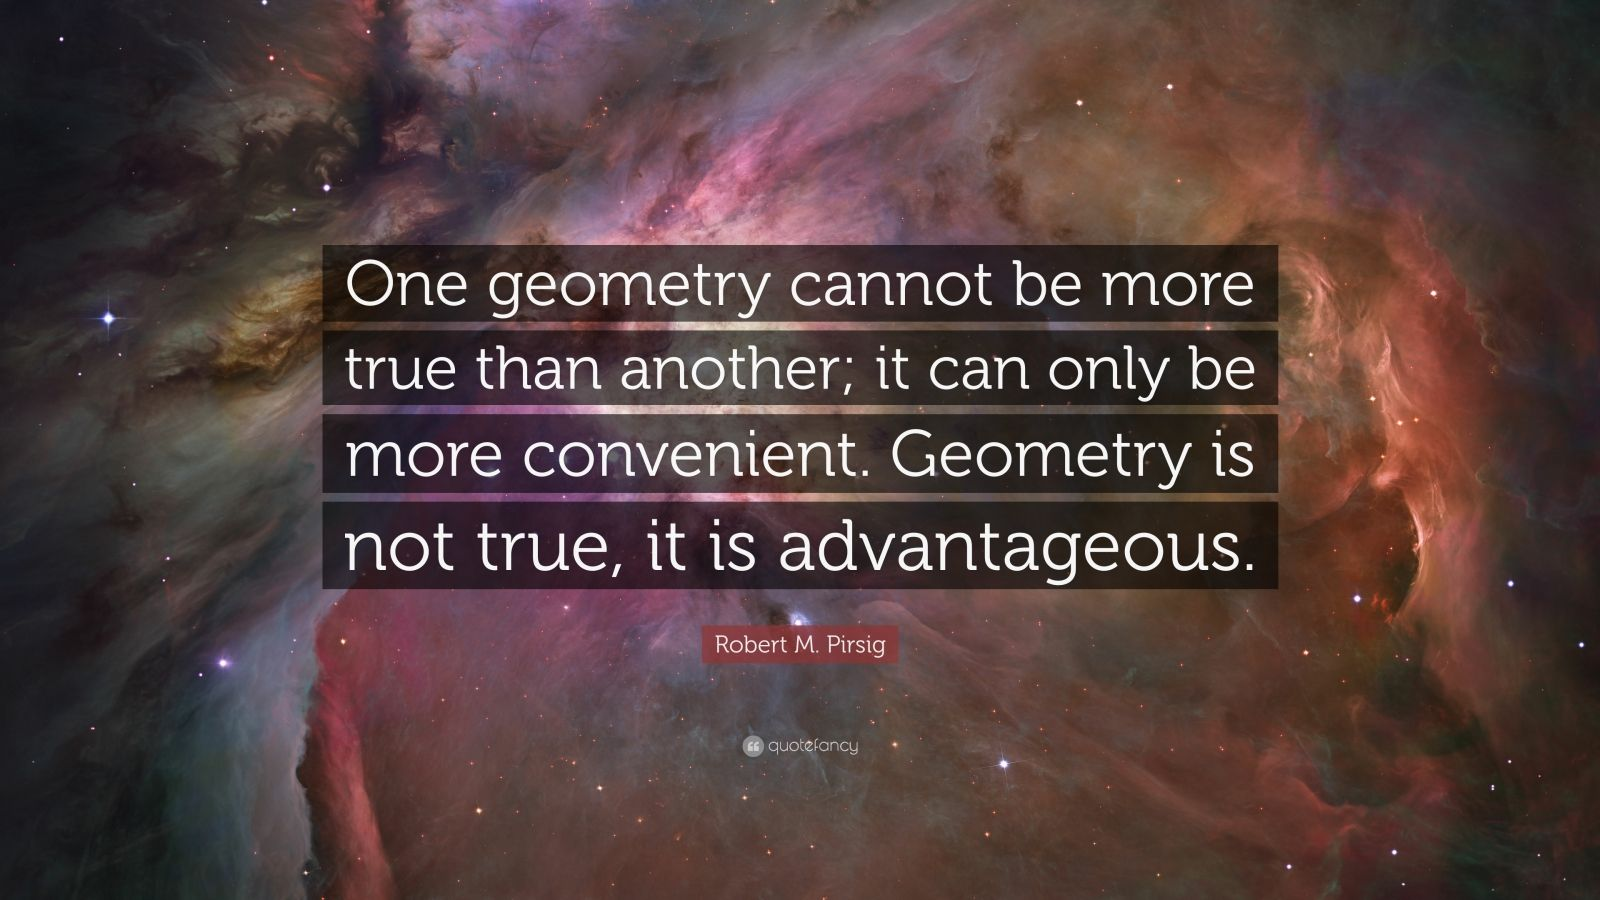 "Robert M. Pirsig Quote: ""One geometry cannot be more true than another; it can only be more convenient. Geometry is not true, it is advantageous."""